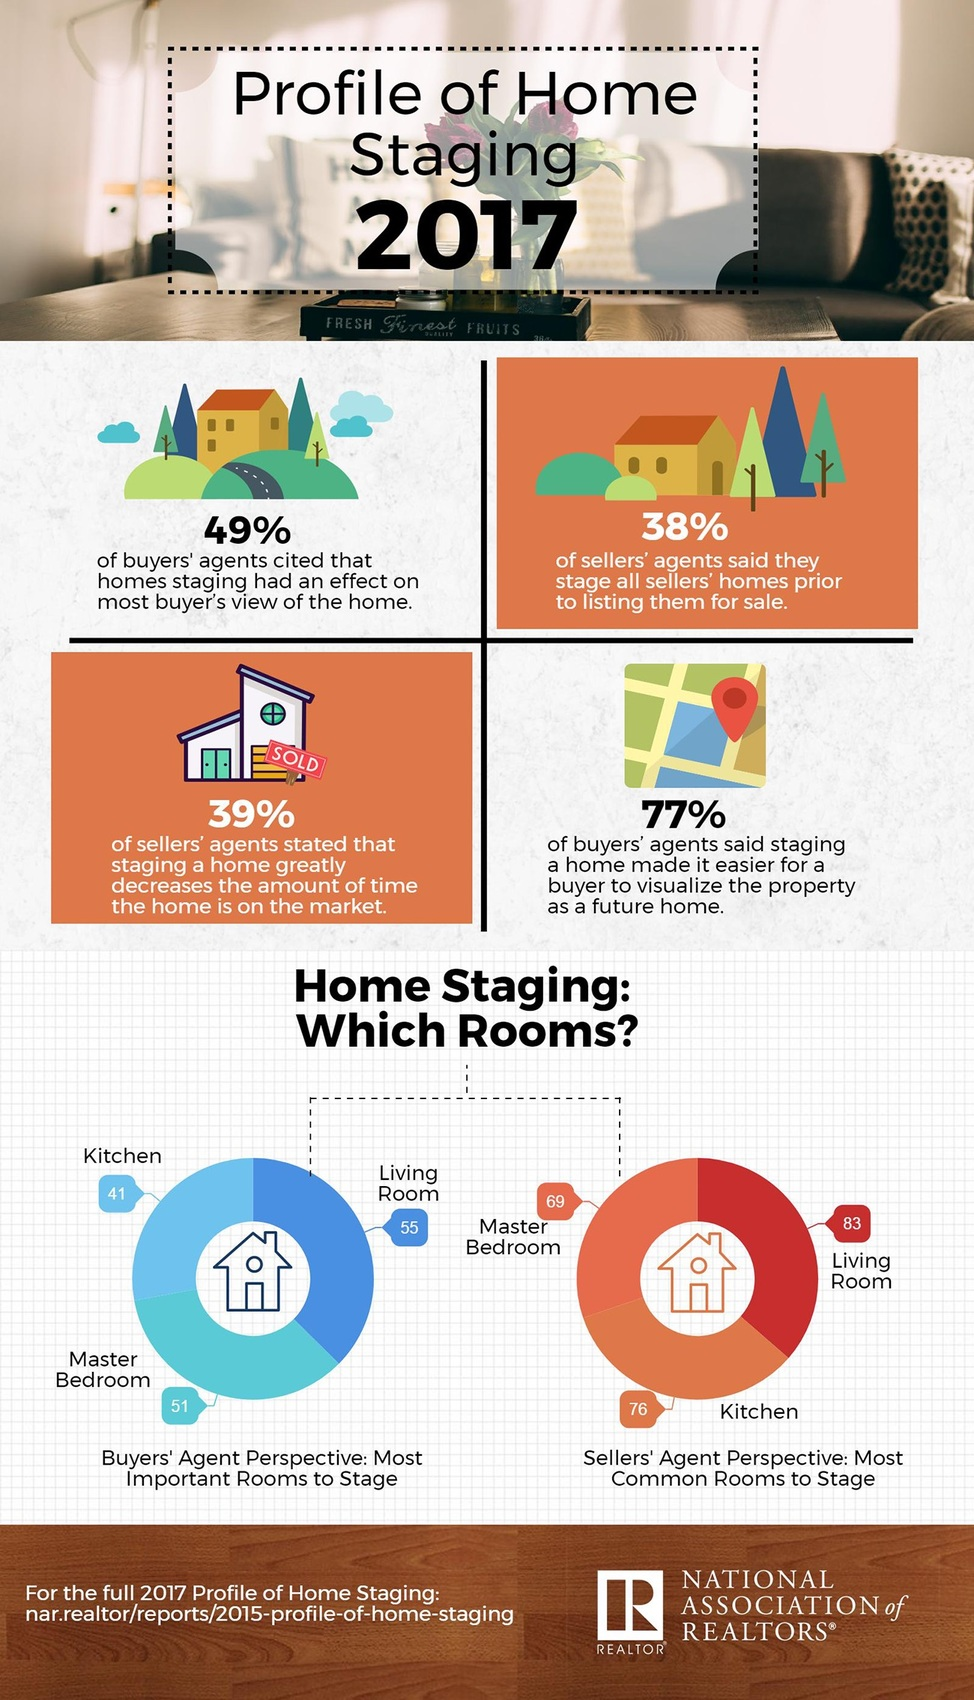 2017-profile-of-home-staging-infographic-07-06-2017-1300w-2269h-1-1